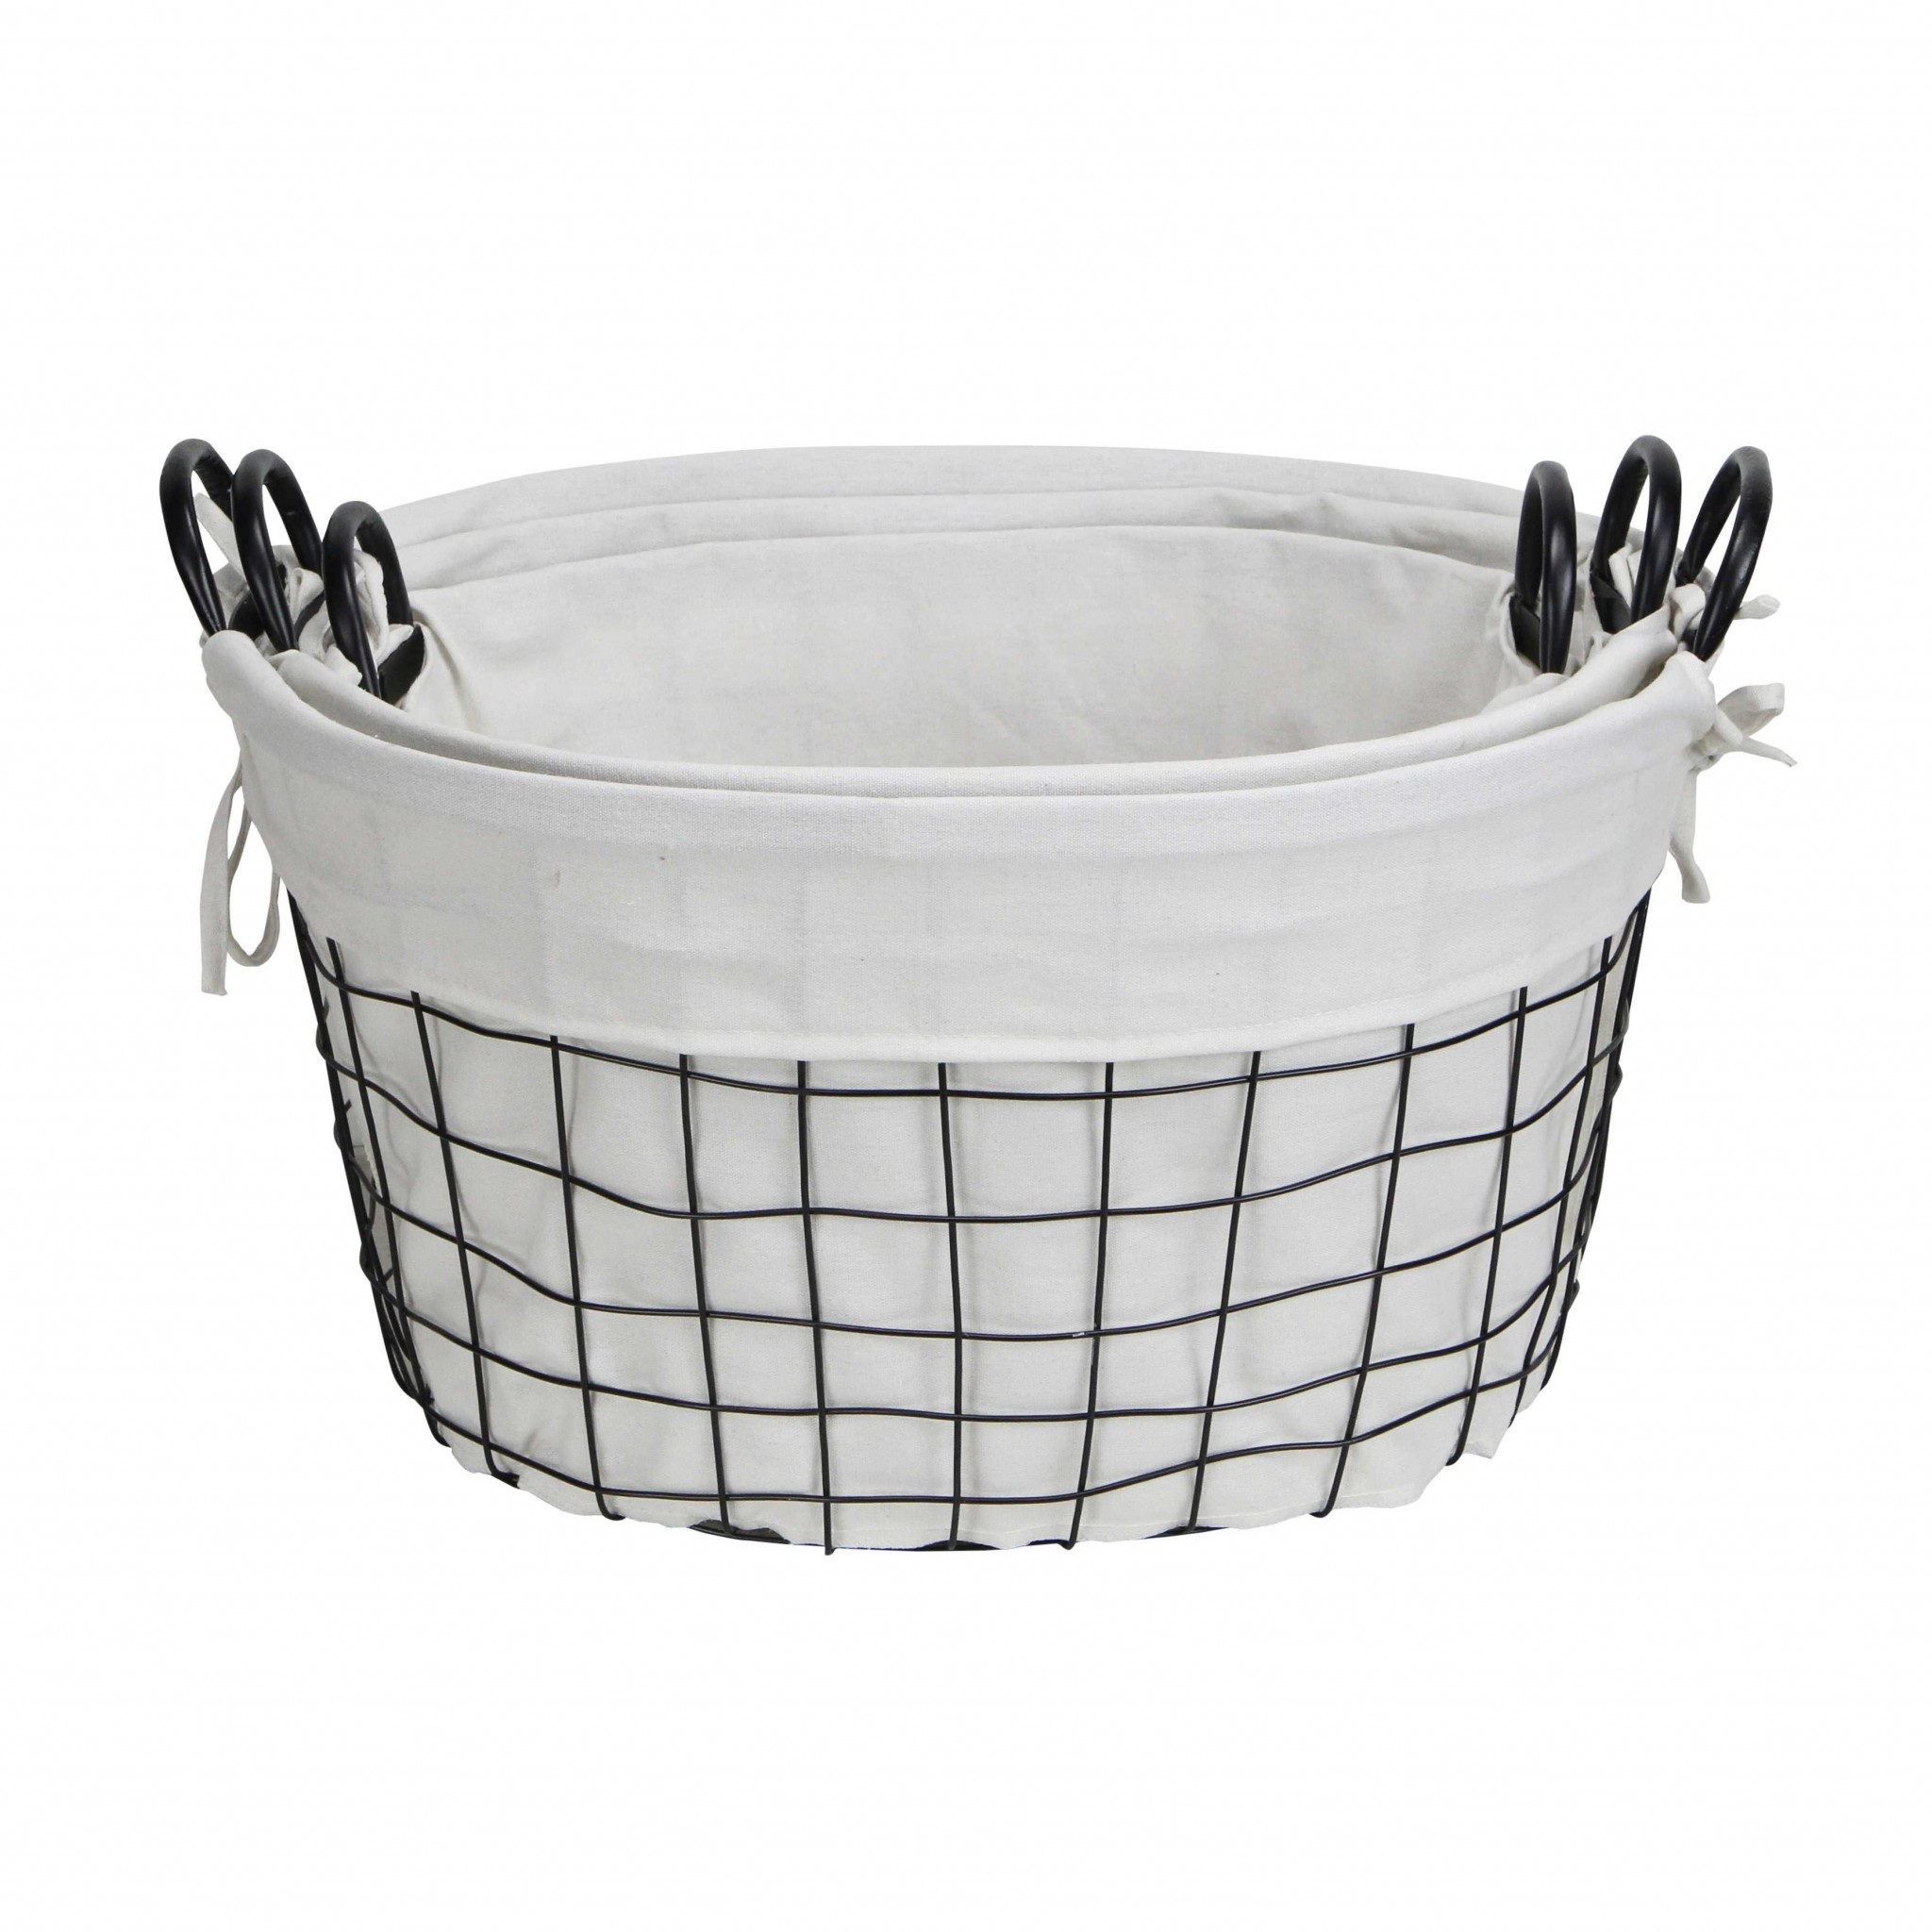 Set of 3 Oval White Lined and Metal Wire Baskets with Handles